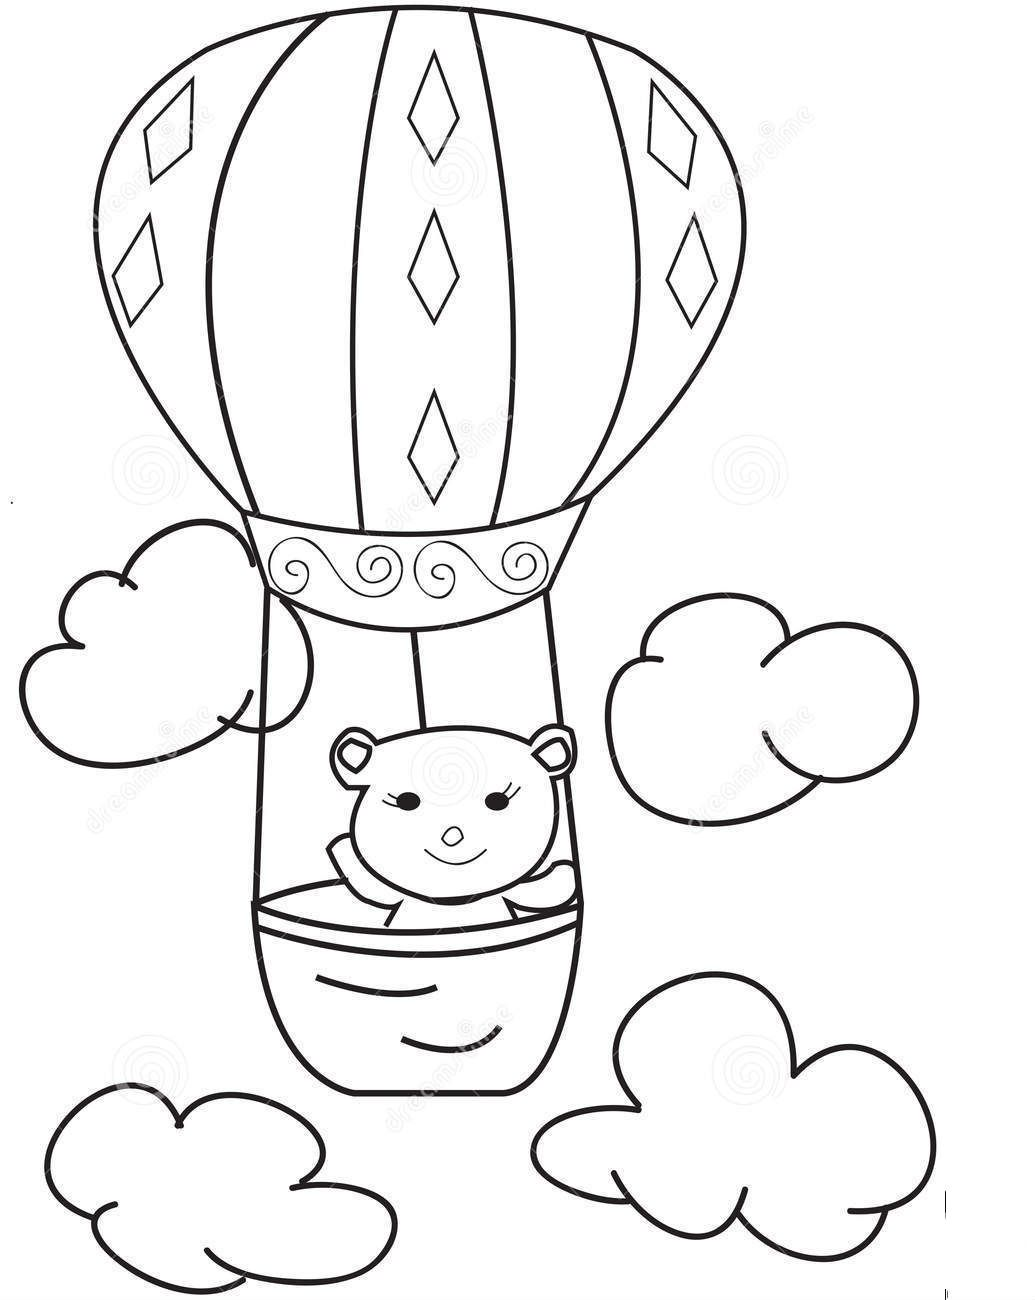 Hot Air Balloons With A Bear Coloring Pages For Kids 1d Printable Hot Air Balloons Coloring Pages For Kids